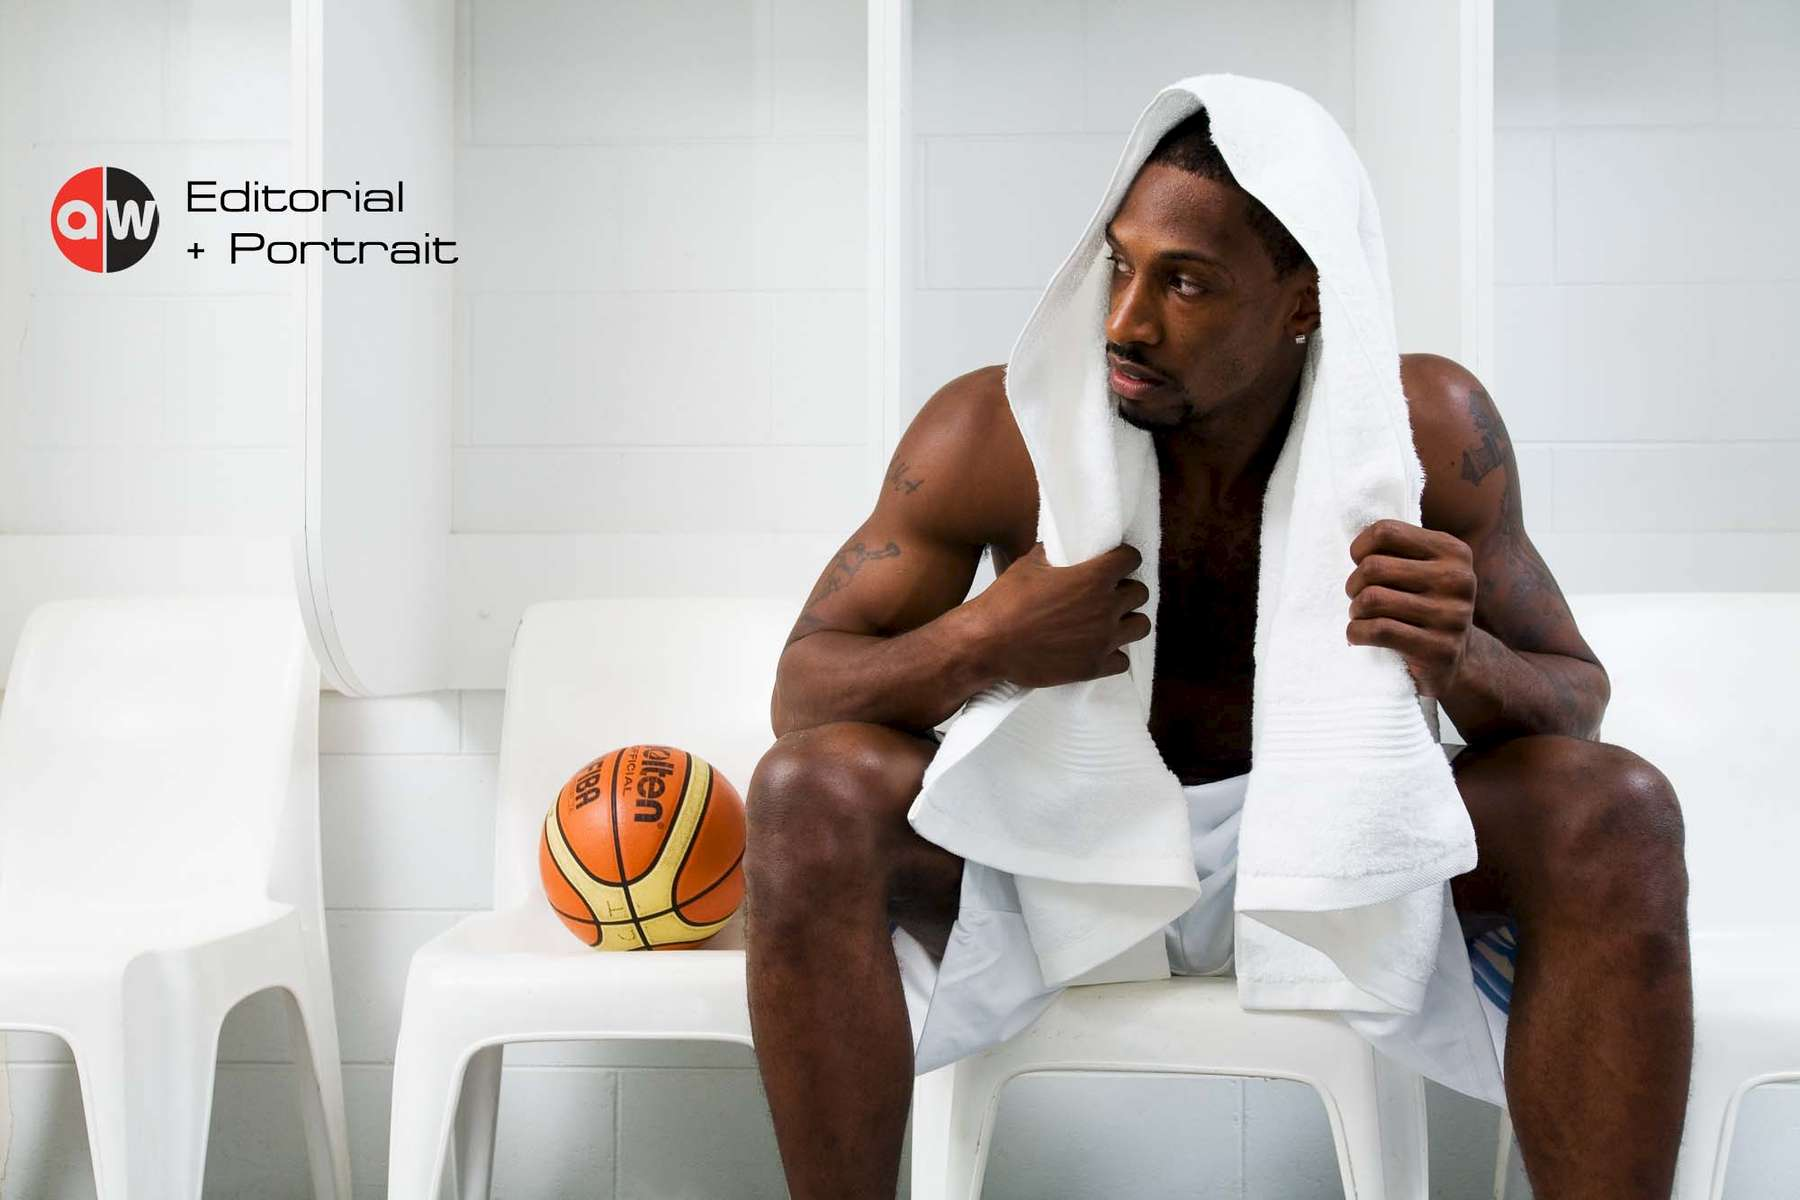 Portrait of basketball player Larry Abney sitting in locker room by professional photographer Cairns